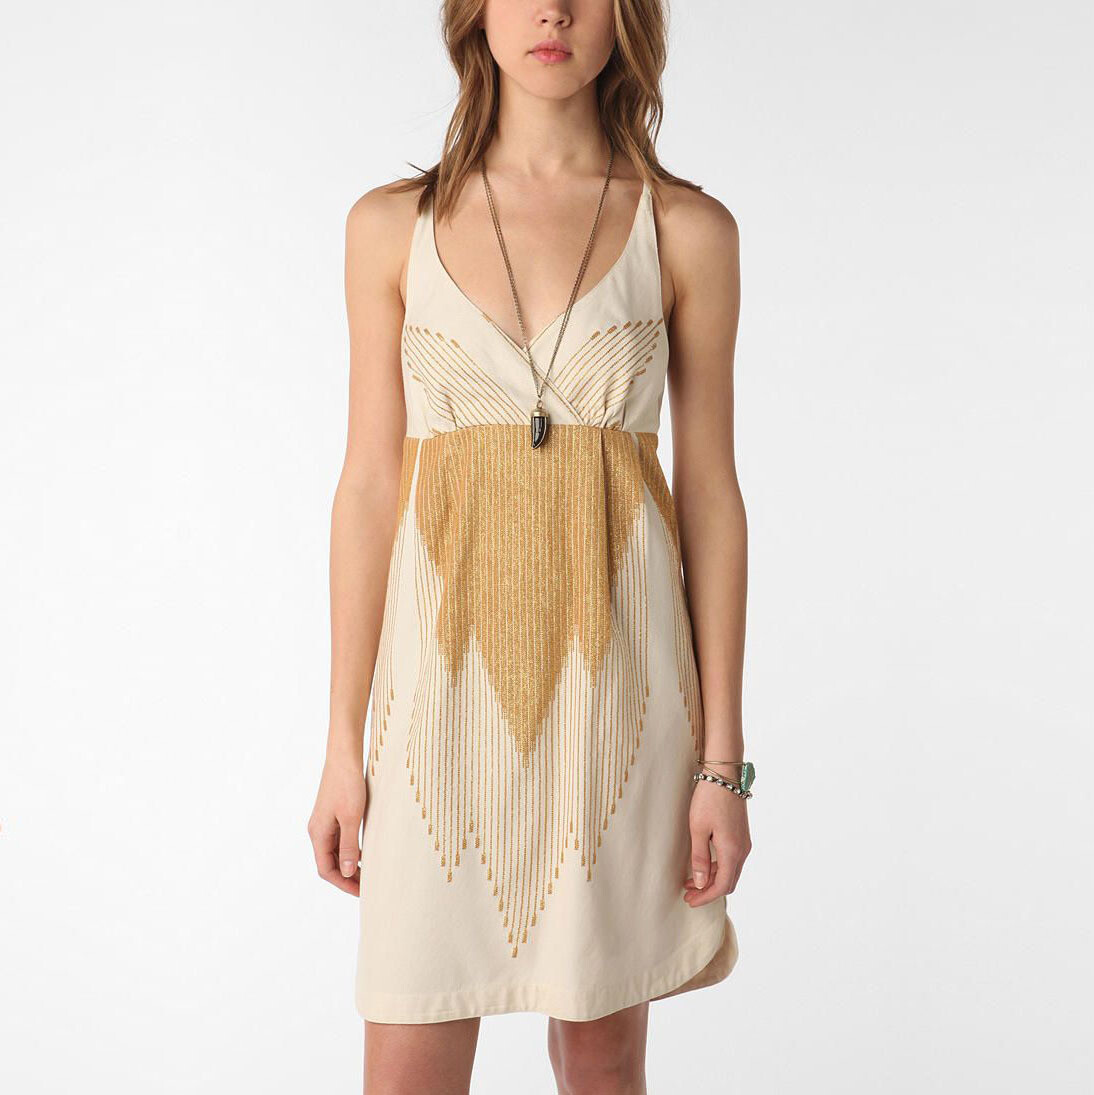 Ecote - Desert Dress - Gold/Cream